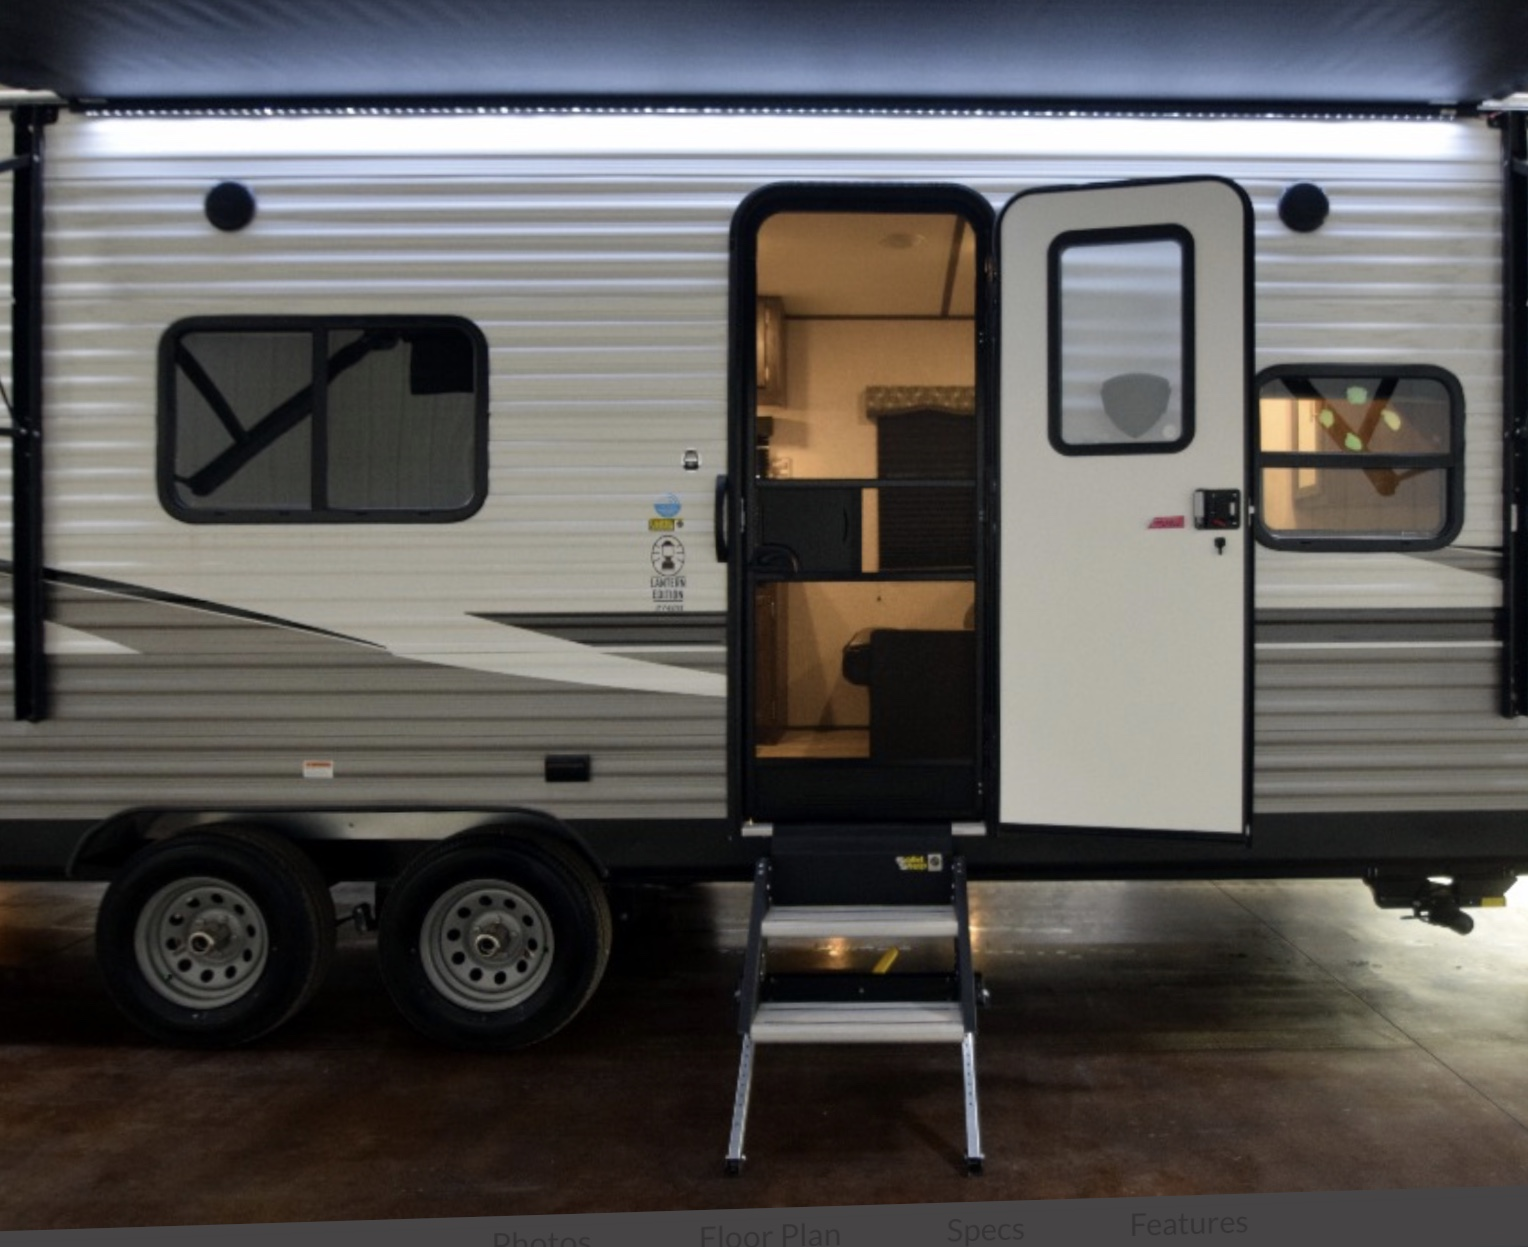 Exterior Canopy with Lighting. Coleman Other 2020